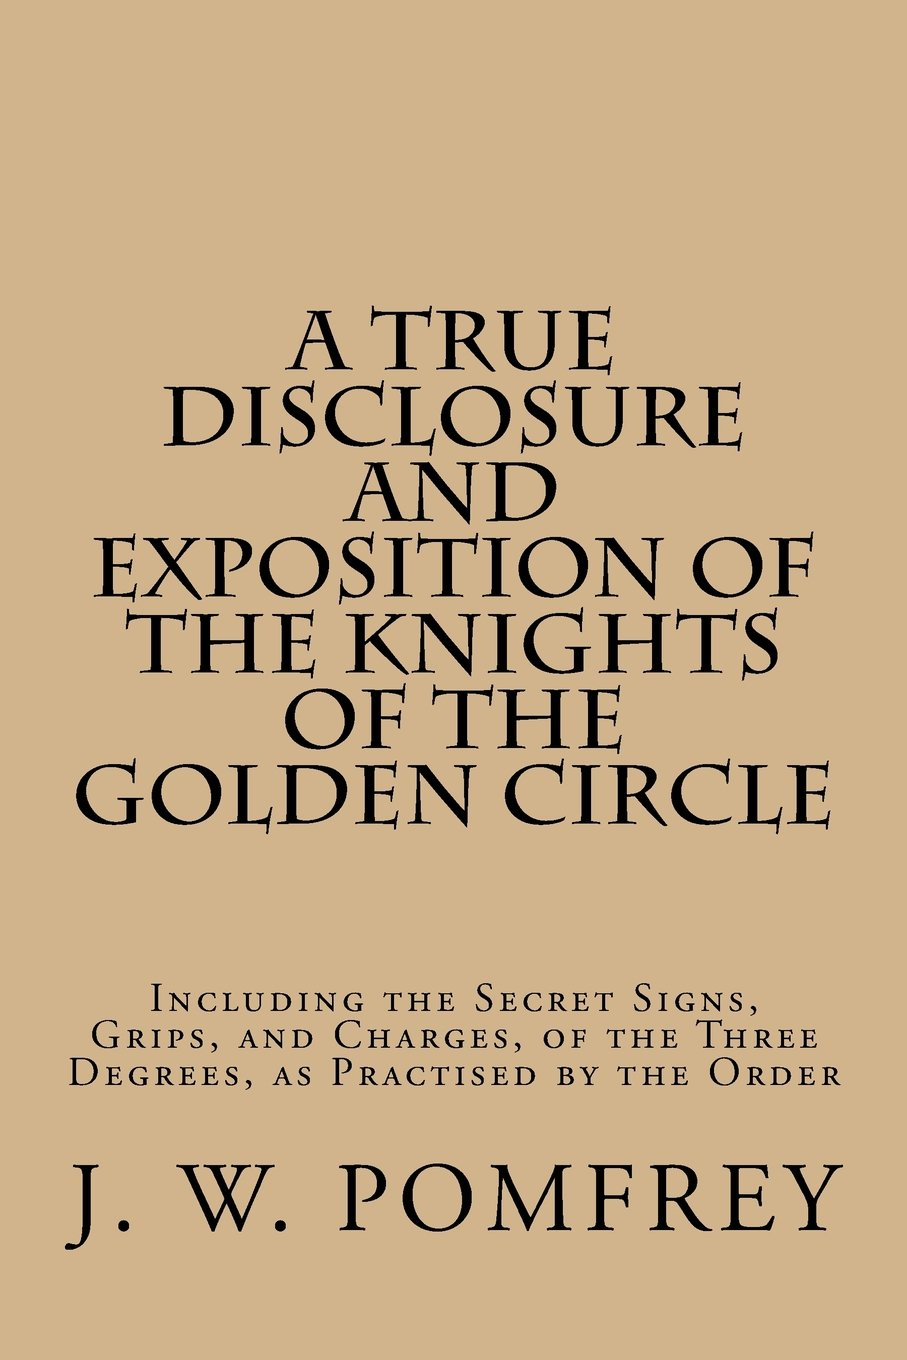 A True Disclosure and Exposition of the Knights of the Golden Circle: Including the Secret Signs, Grips, and Charges, of the Three Degrees, as Practised by the Order pdf epub